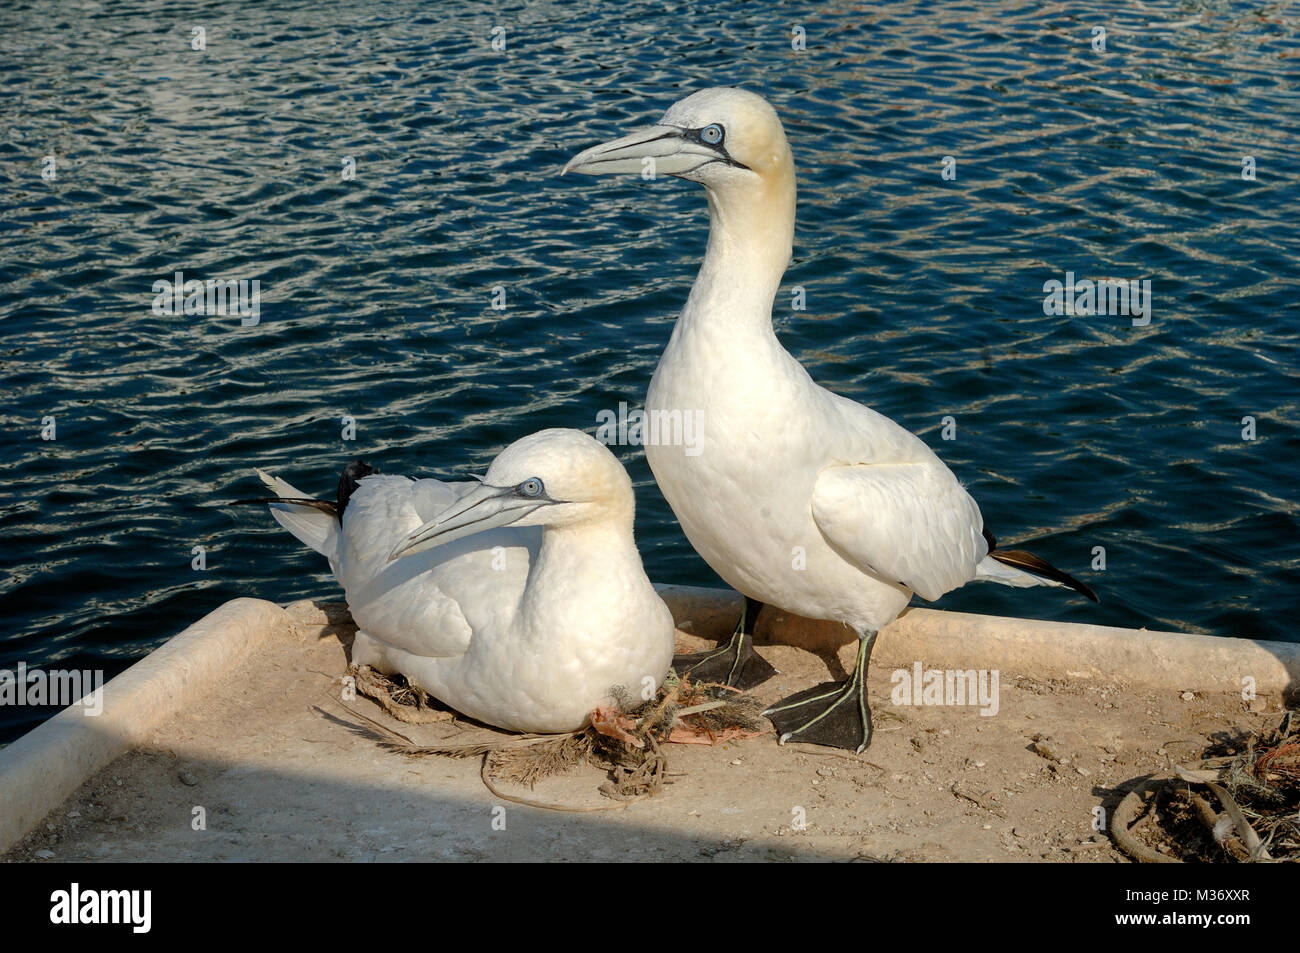 Pair of Northern Gannets, Morus bassanus, Nesting on the Quayside at the Port of Carry-le-Rouet Provence France - Stock Image